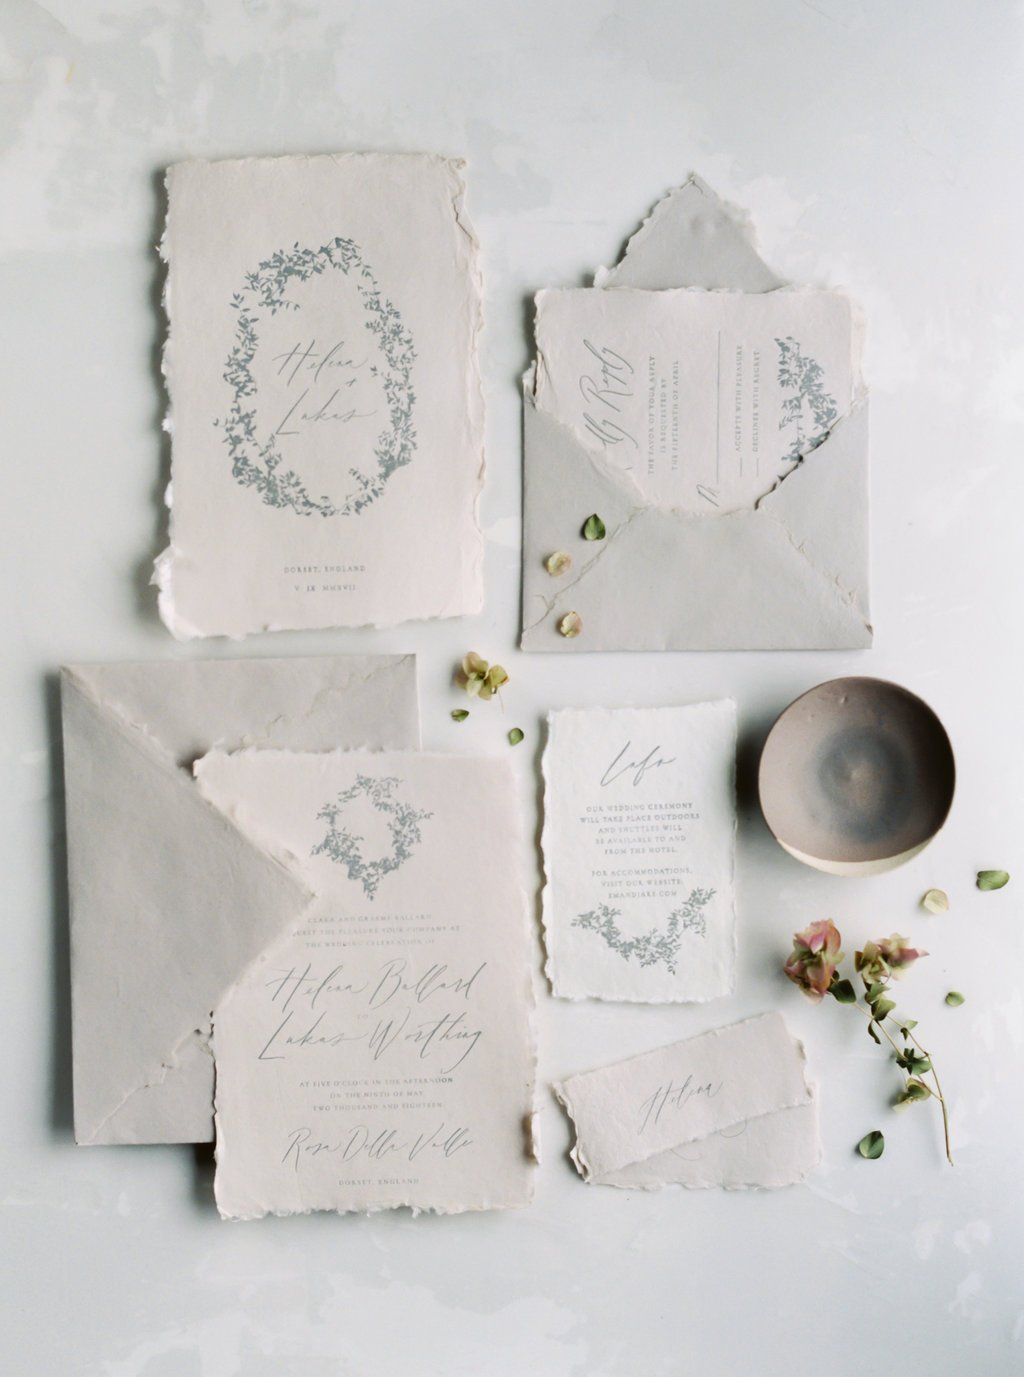 Wedding Inspiration : Vintage Stationery & Wax Seals | Dreamery Events